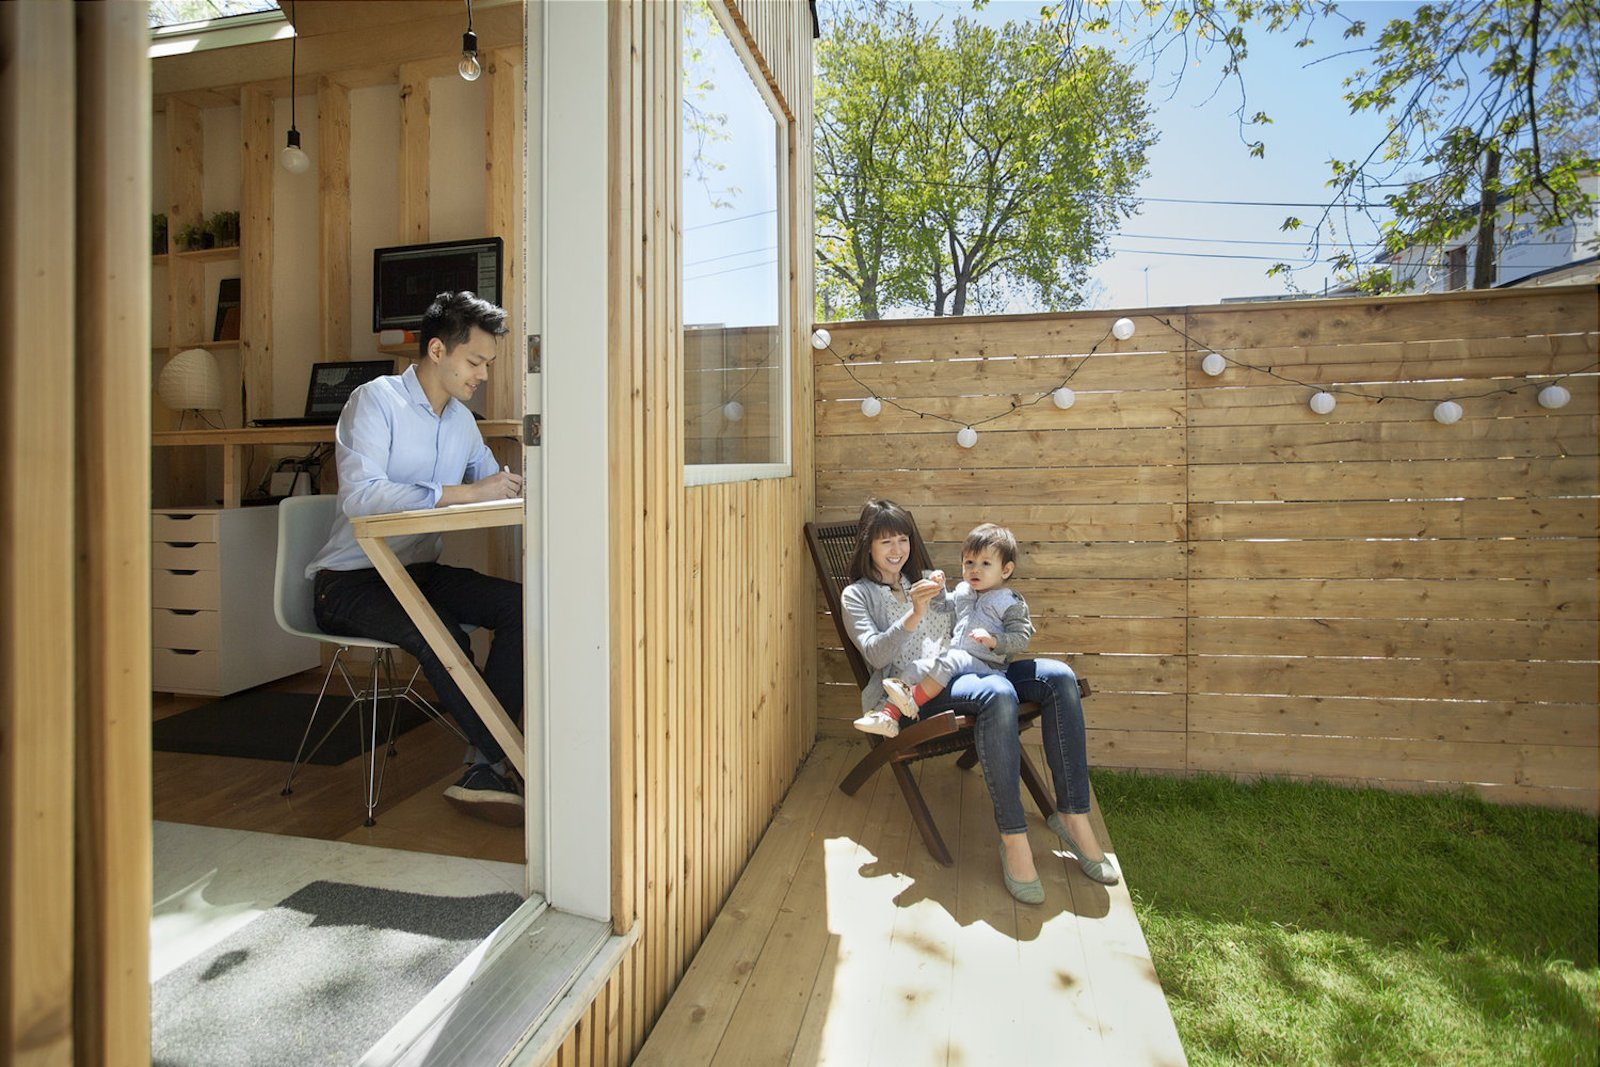 Outdoor, Trees, Grass, Small Patio, Porch, Deck, Wood Patio, Porch, Deck, Horizontal Fences, Wall, Wood Fences, Wall, Hanging Lighting, and Back Yard  Photo 8 of 10 in This Architect's Tiny Studio Is the Ultimate Backyard Workspace